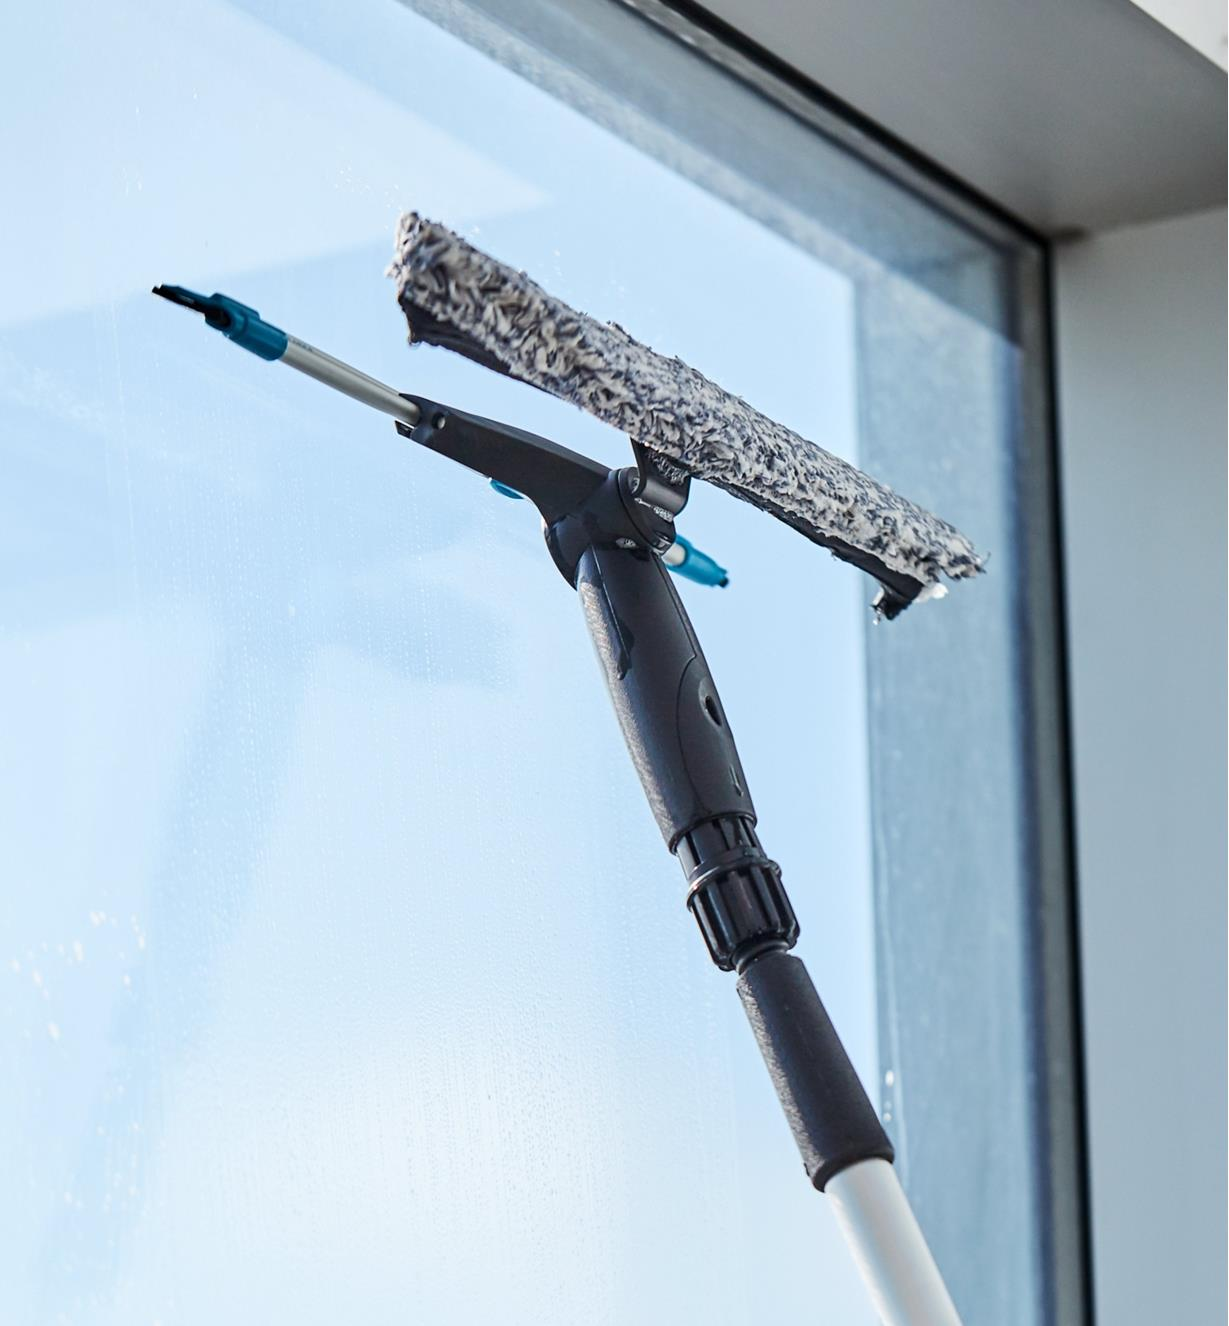 Using the rubber squeegee to wipe a window dry